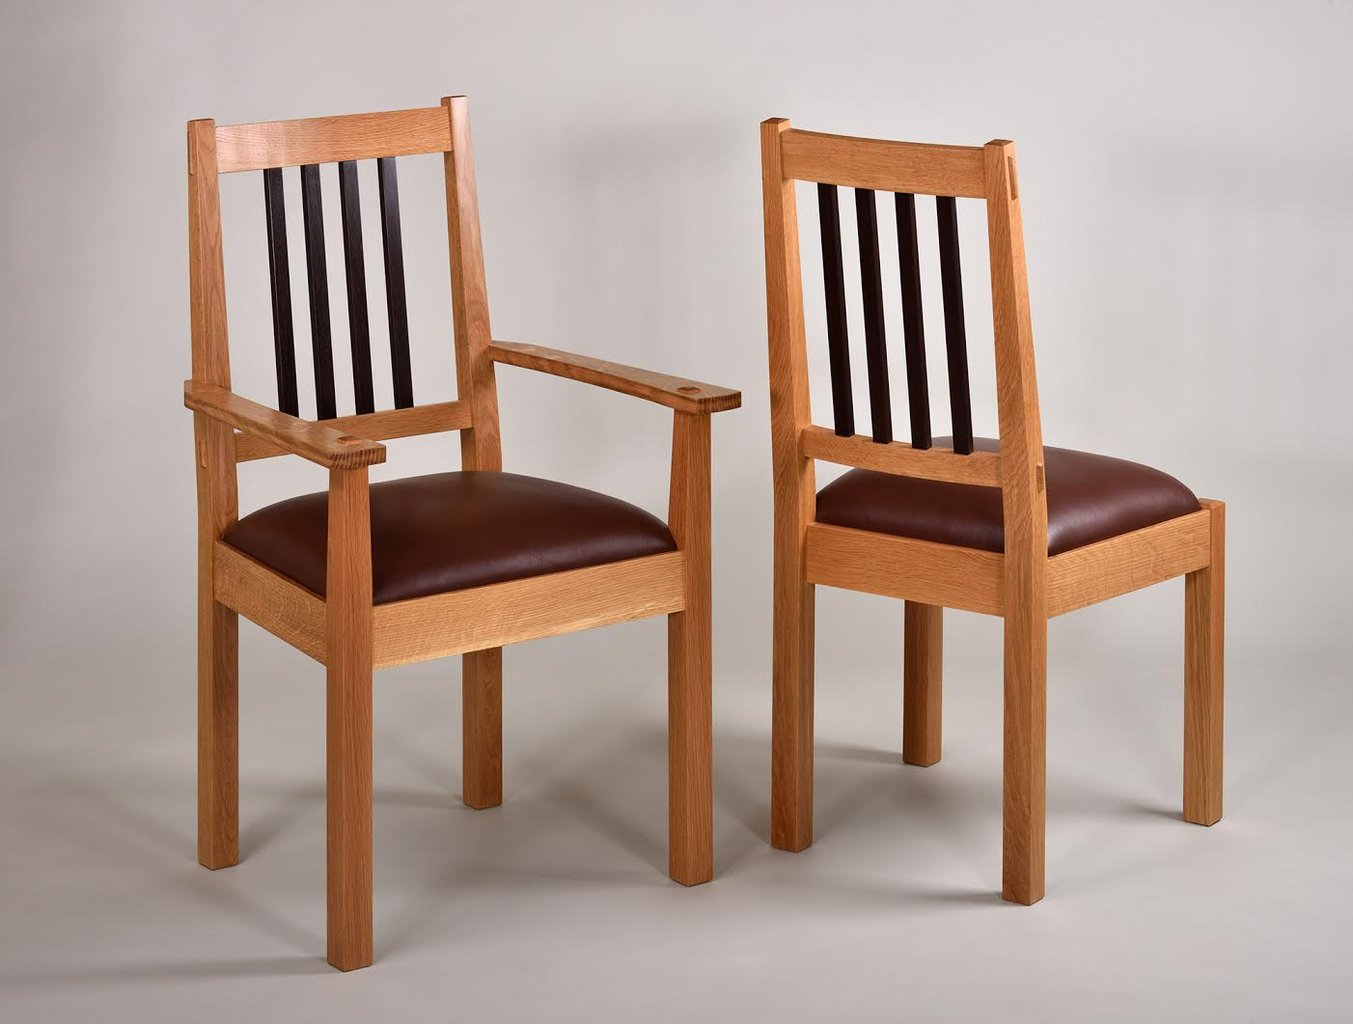 Chalford Dining Chairs. White Oak and Wenge.